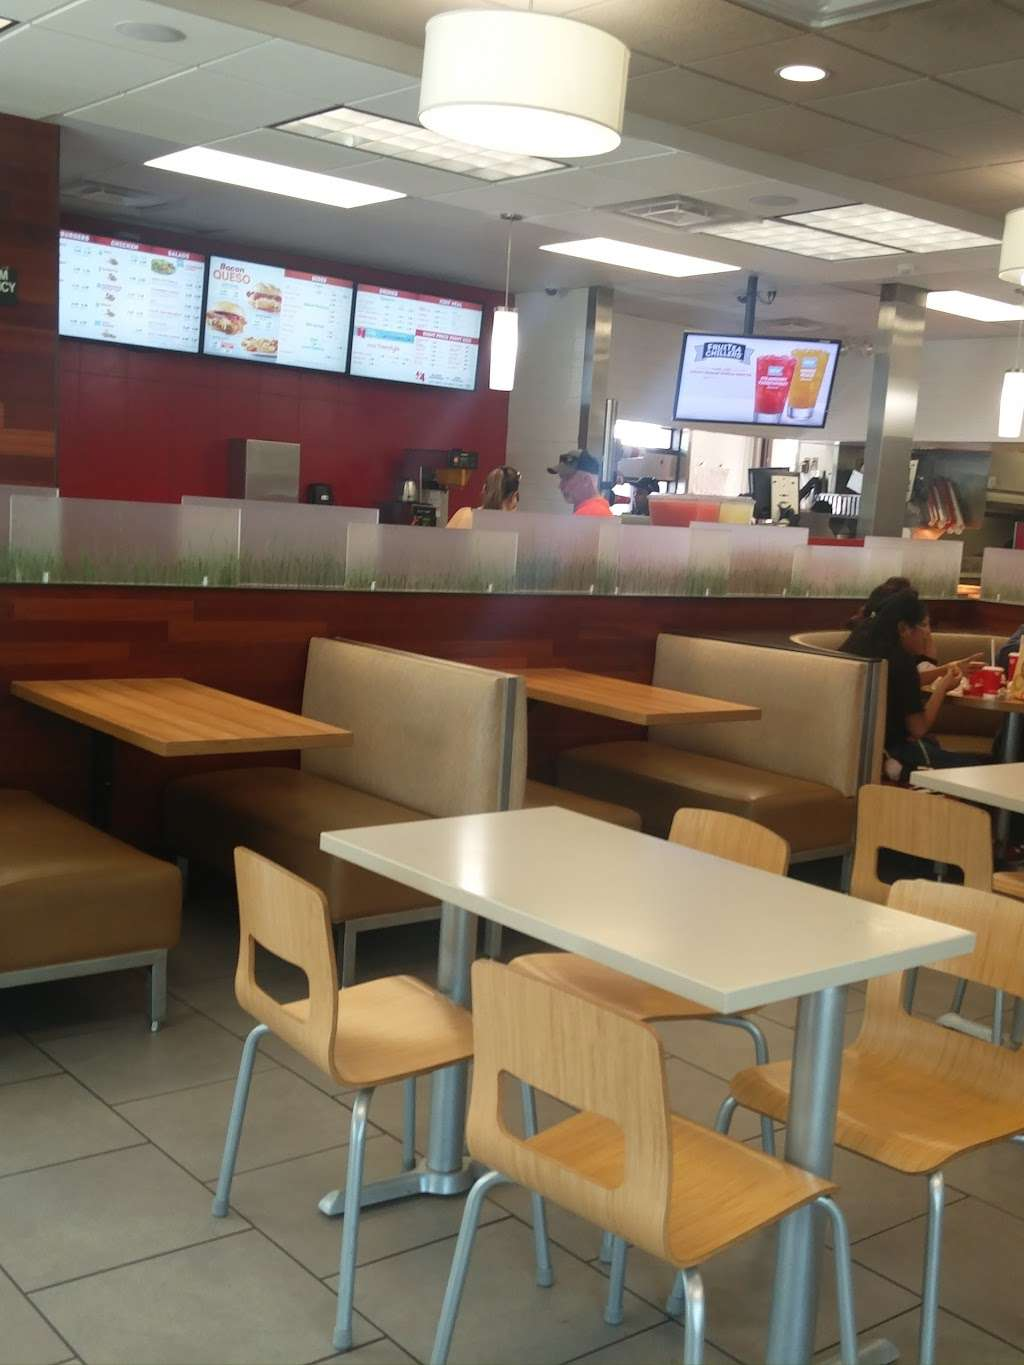 Wendys - restaurant  | Photo 9 of 10 | Address: 3232 Lavon Dr, Garland, TX 75040, USA | Phone: (972) 805-4463